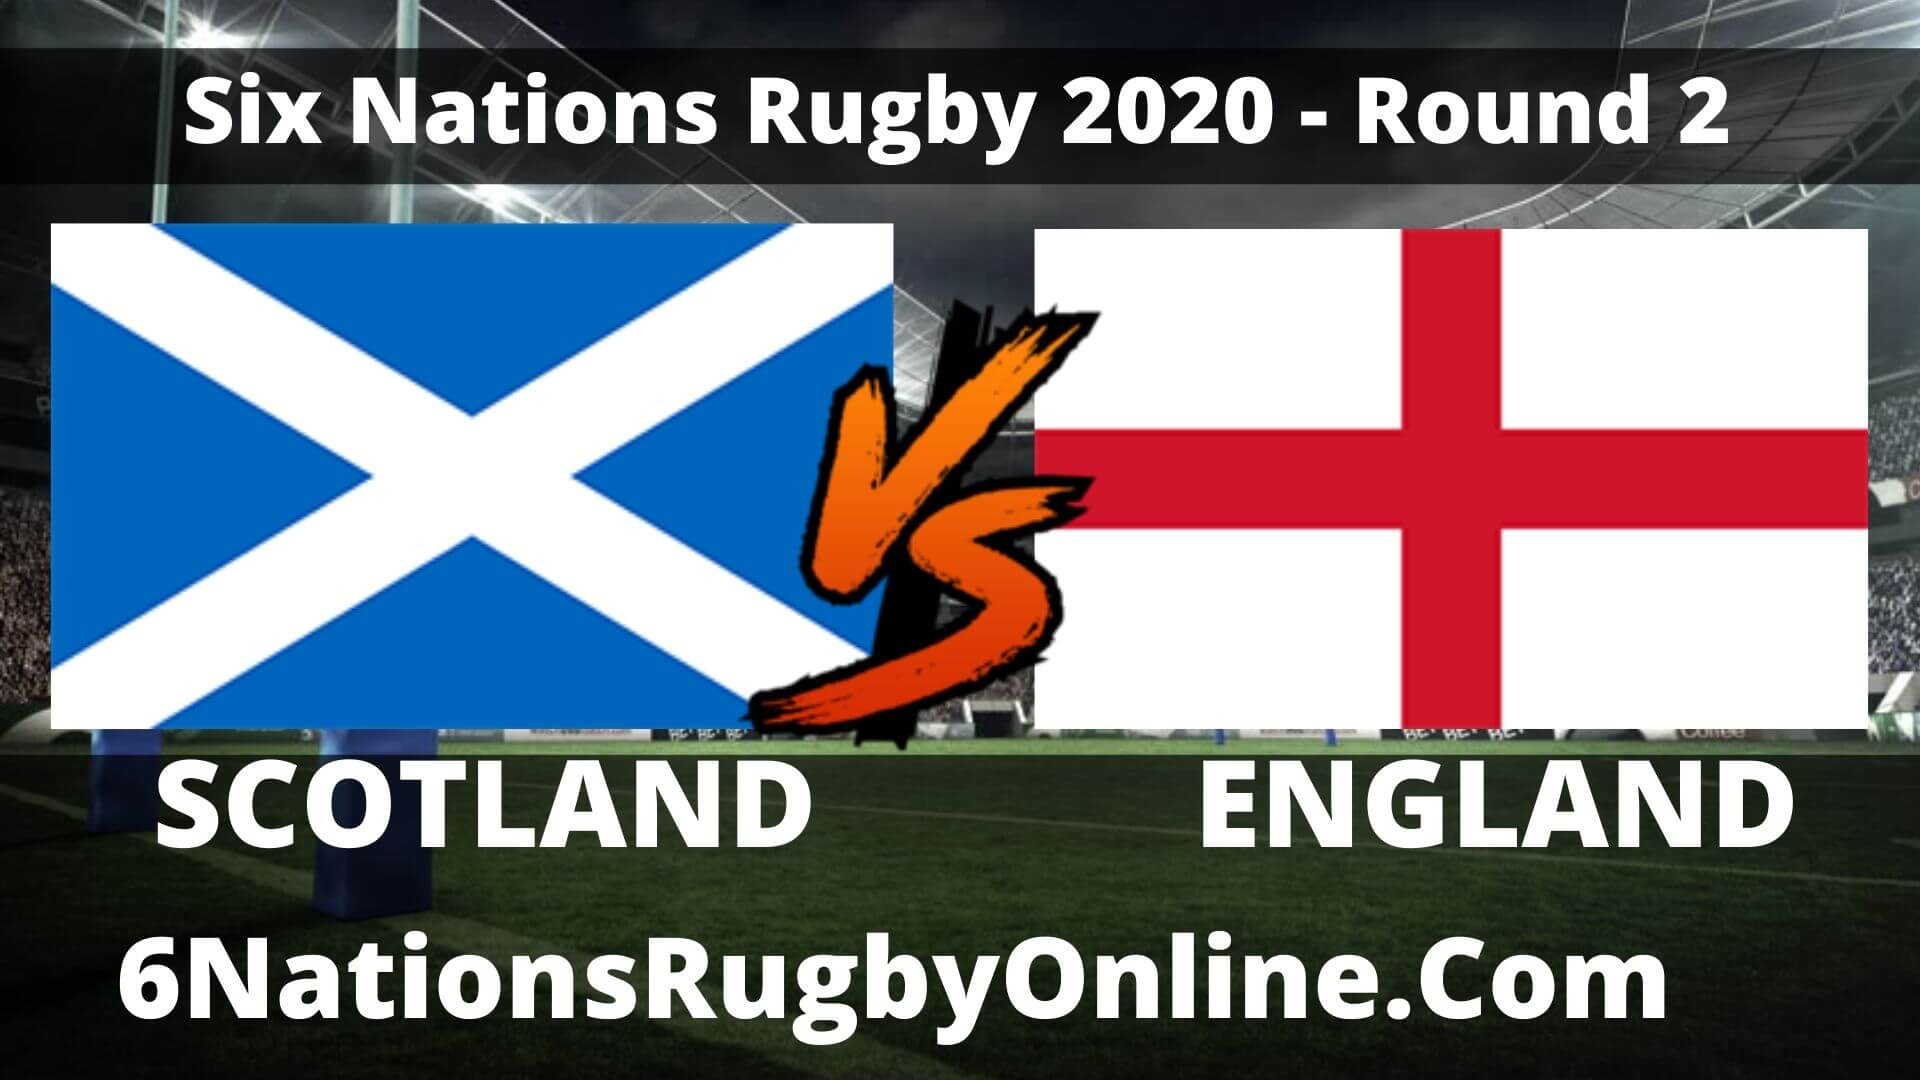 Scotland vs England Live Stream 2020 Round 2 | Full Match Replay